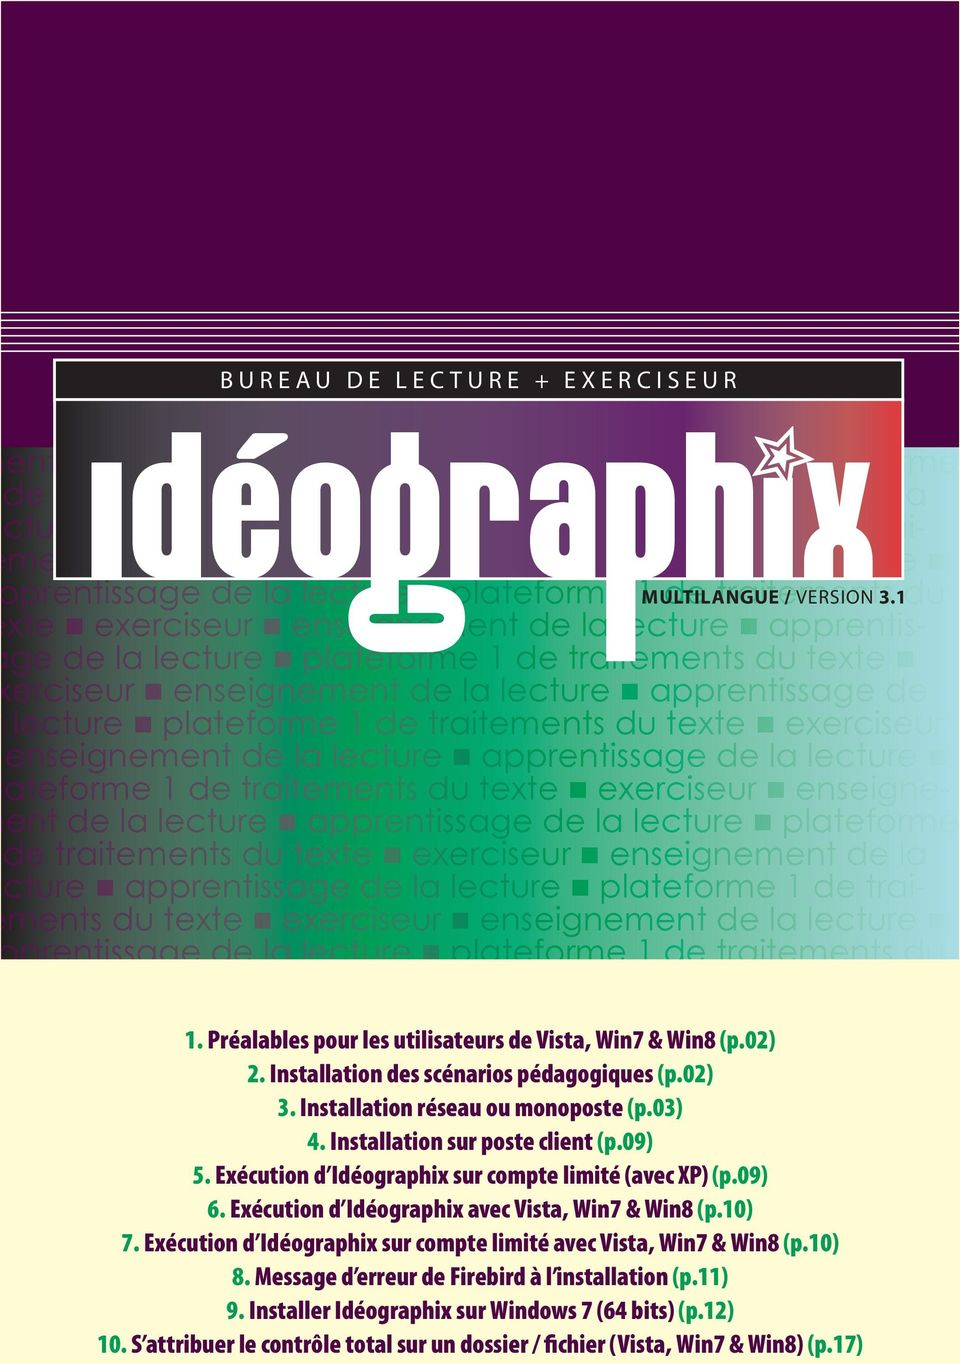 de la lecture plateforme 1 MULTILANGUE de traitements / VERSION 3.1du texte exerciseur enseignement de la lecture apprentissage de la  de la  de la  1.